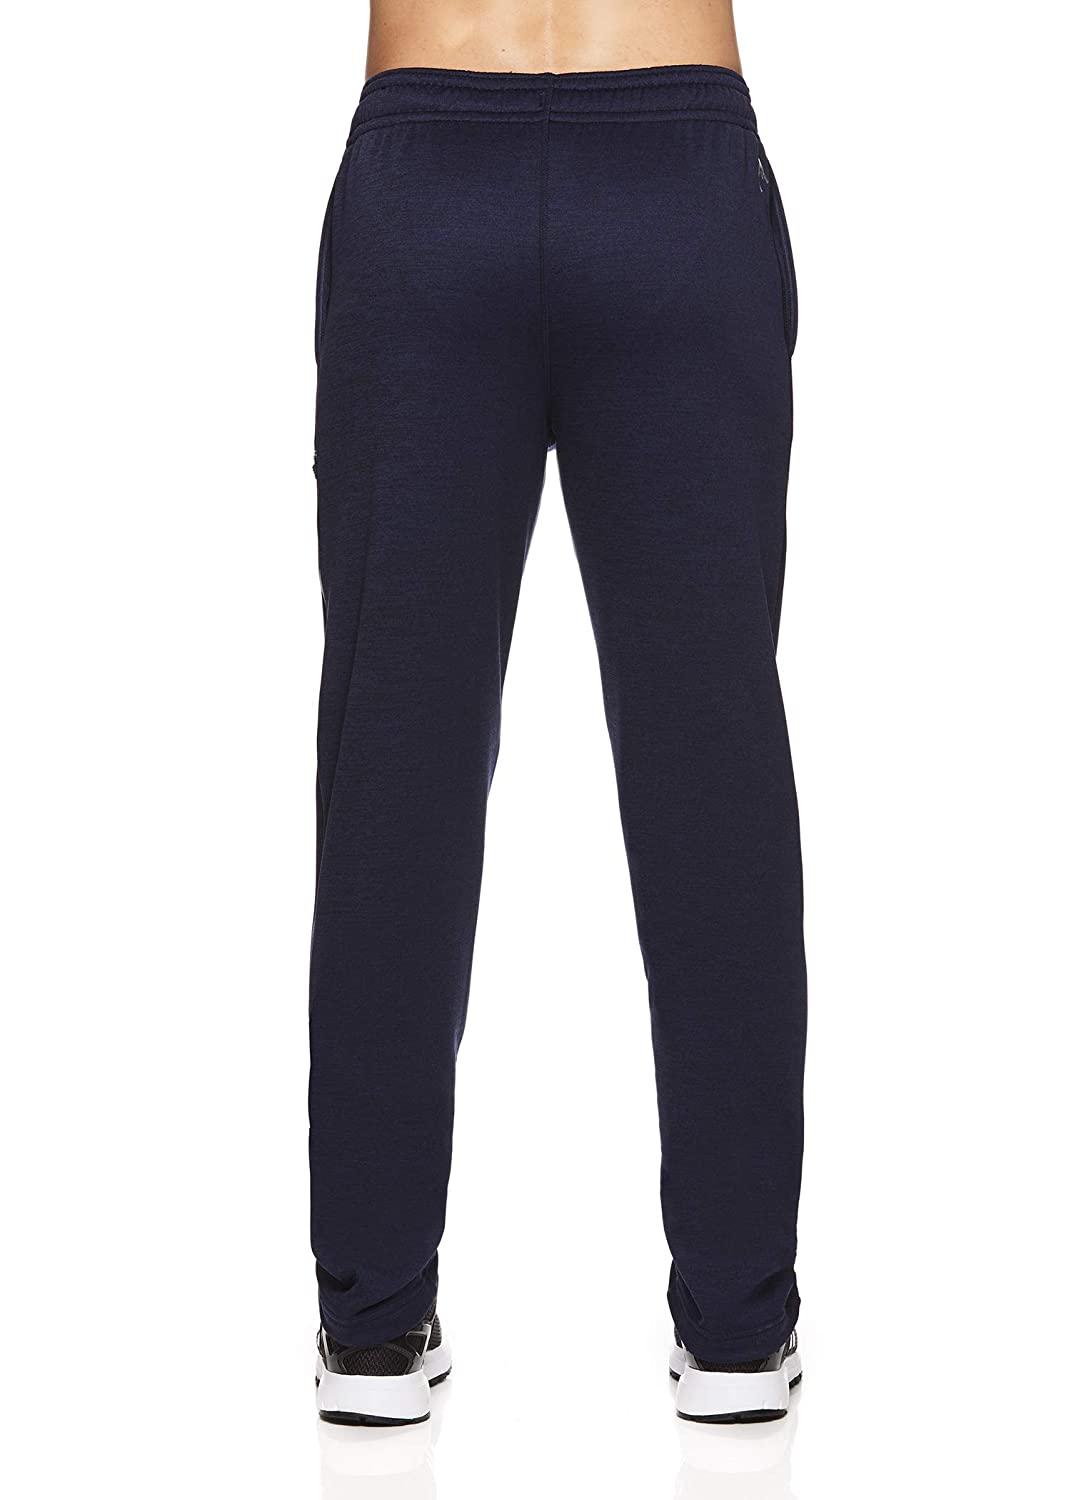 Performance Athletic Workout /& Training Sweatpants HEAD Mens Running Pants